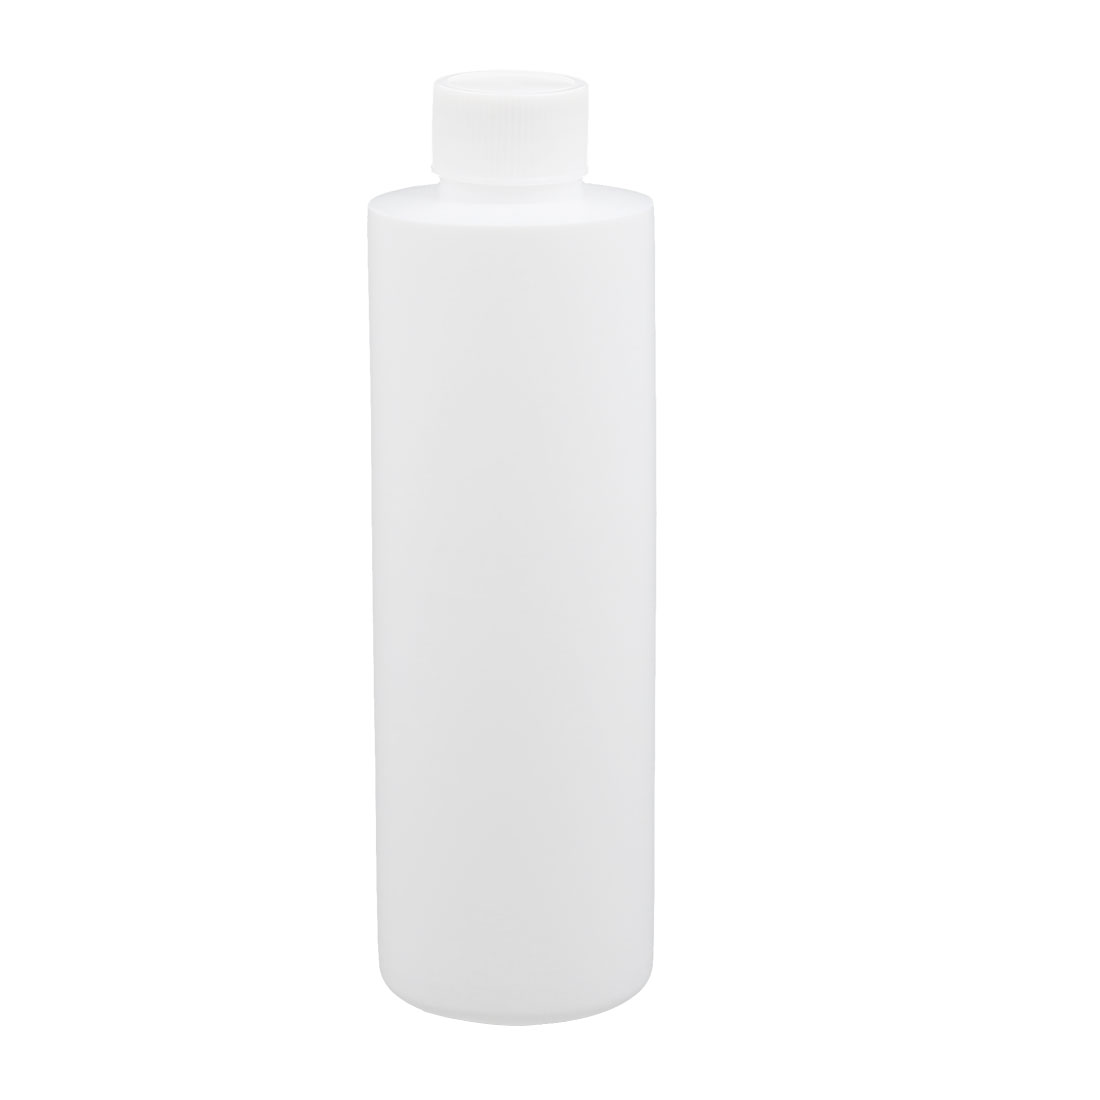 6.8oz HDPE Plastic White Refillable Narrow Mouth Storage Bottle Jar